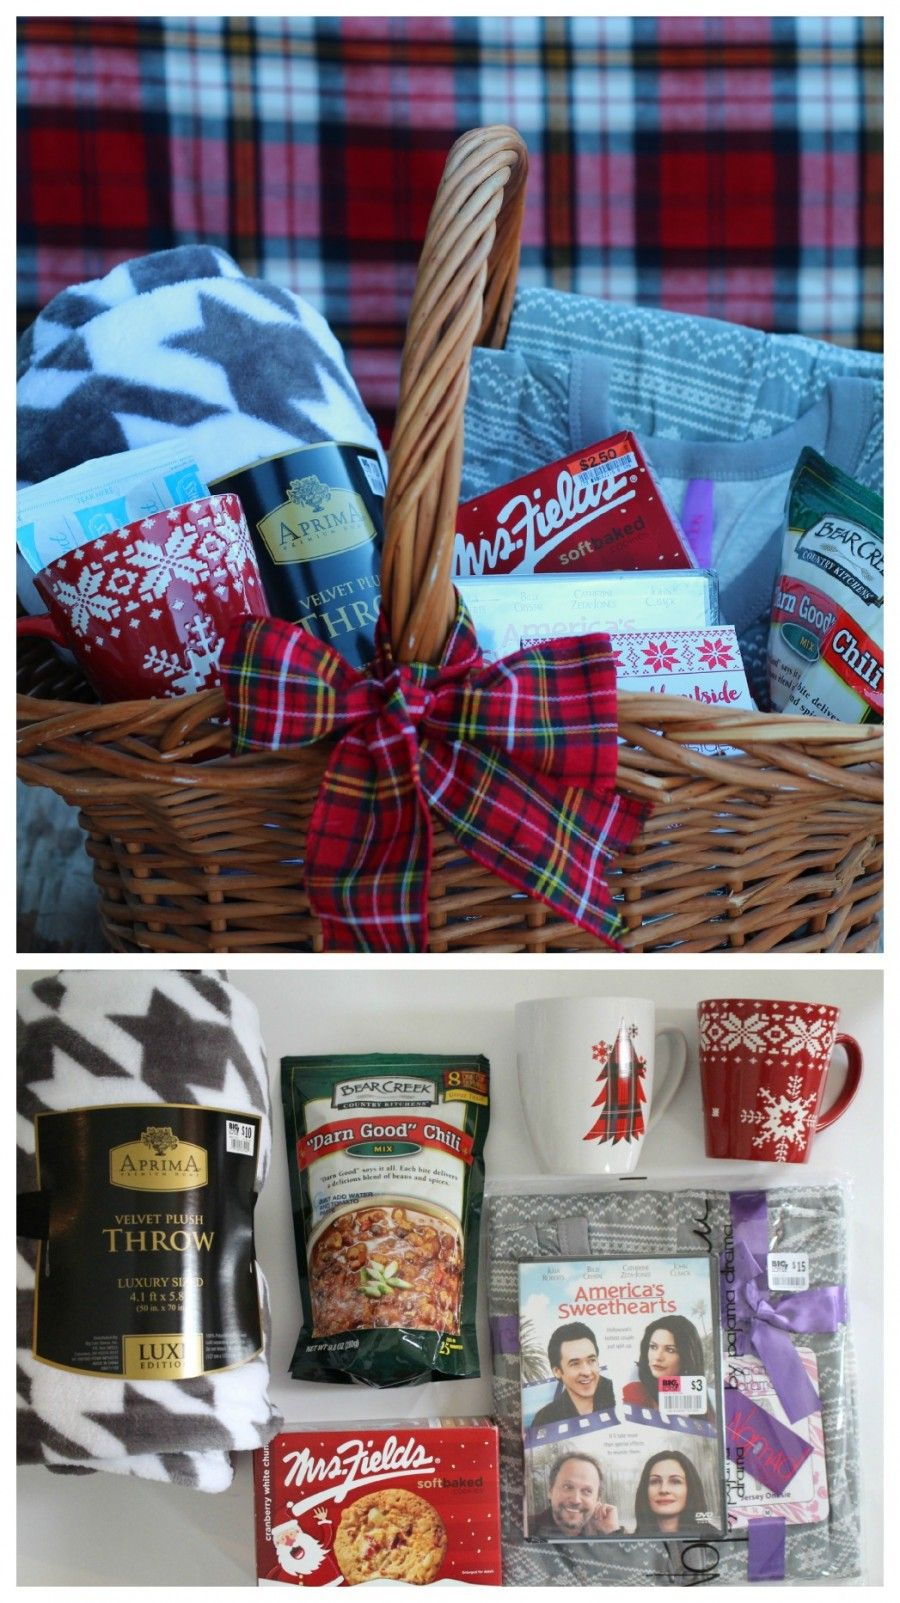 Themed gift basket roundup | Gifty Nifty Jary Baskety stuff ...